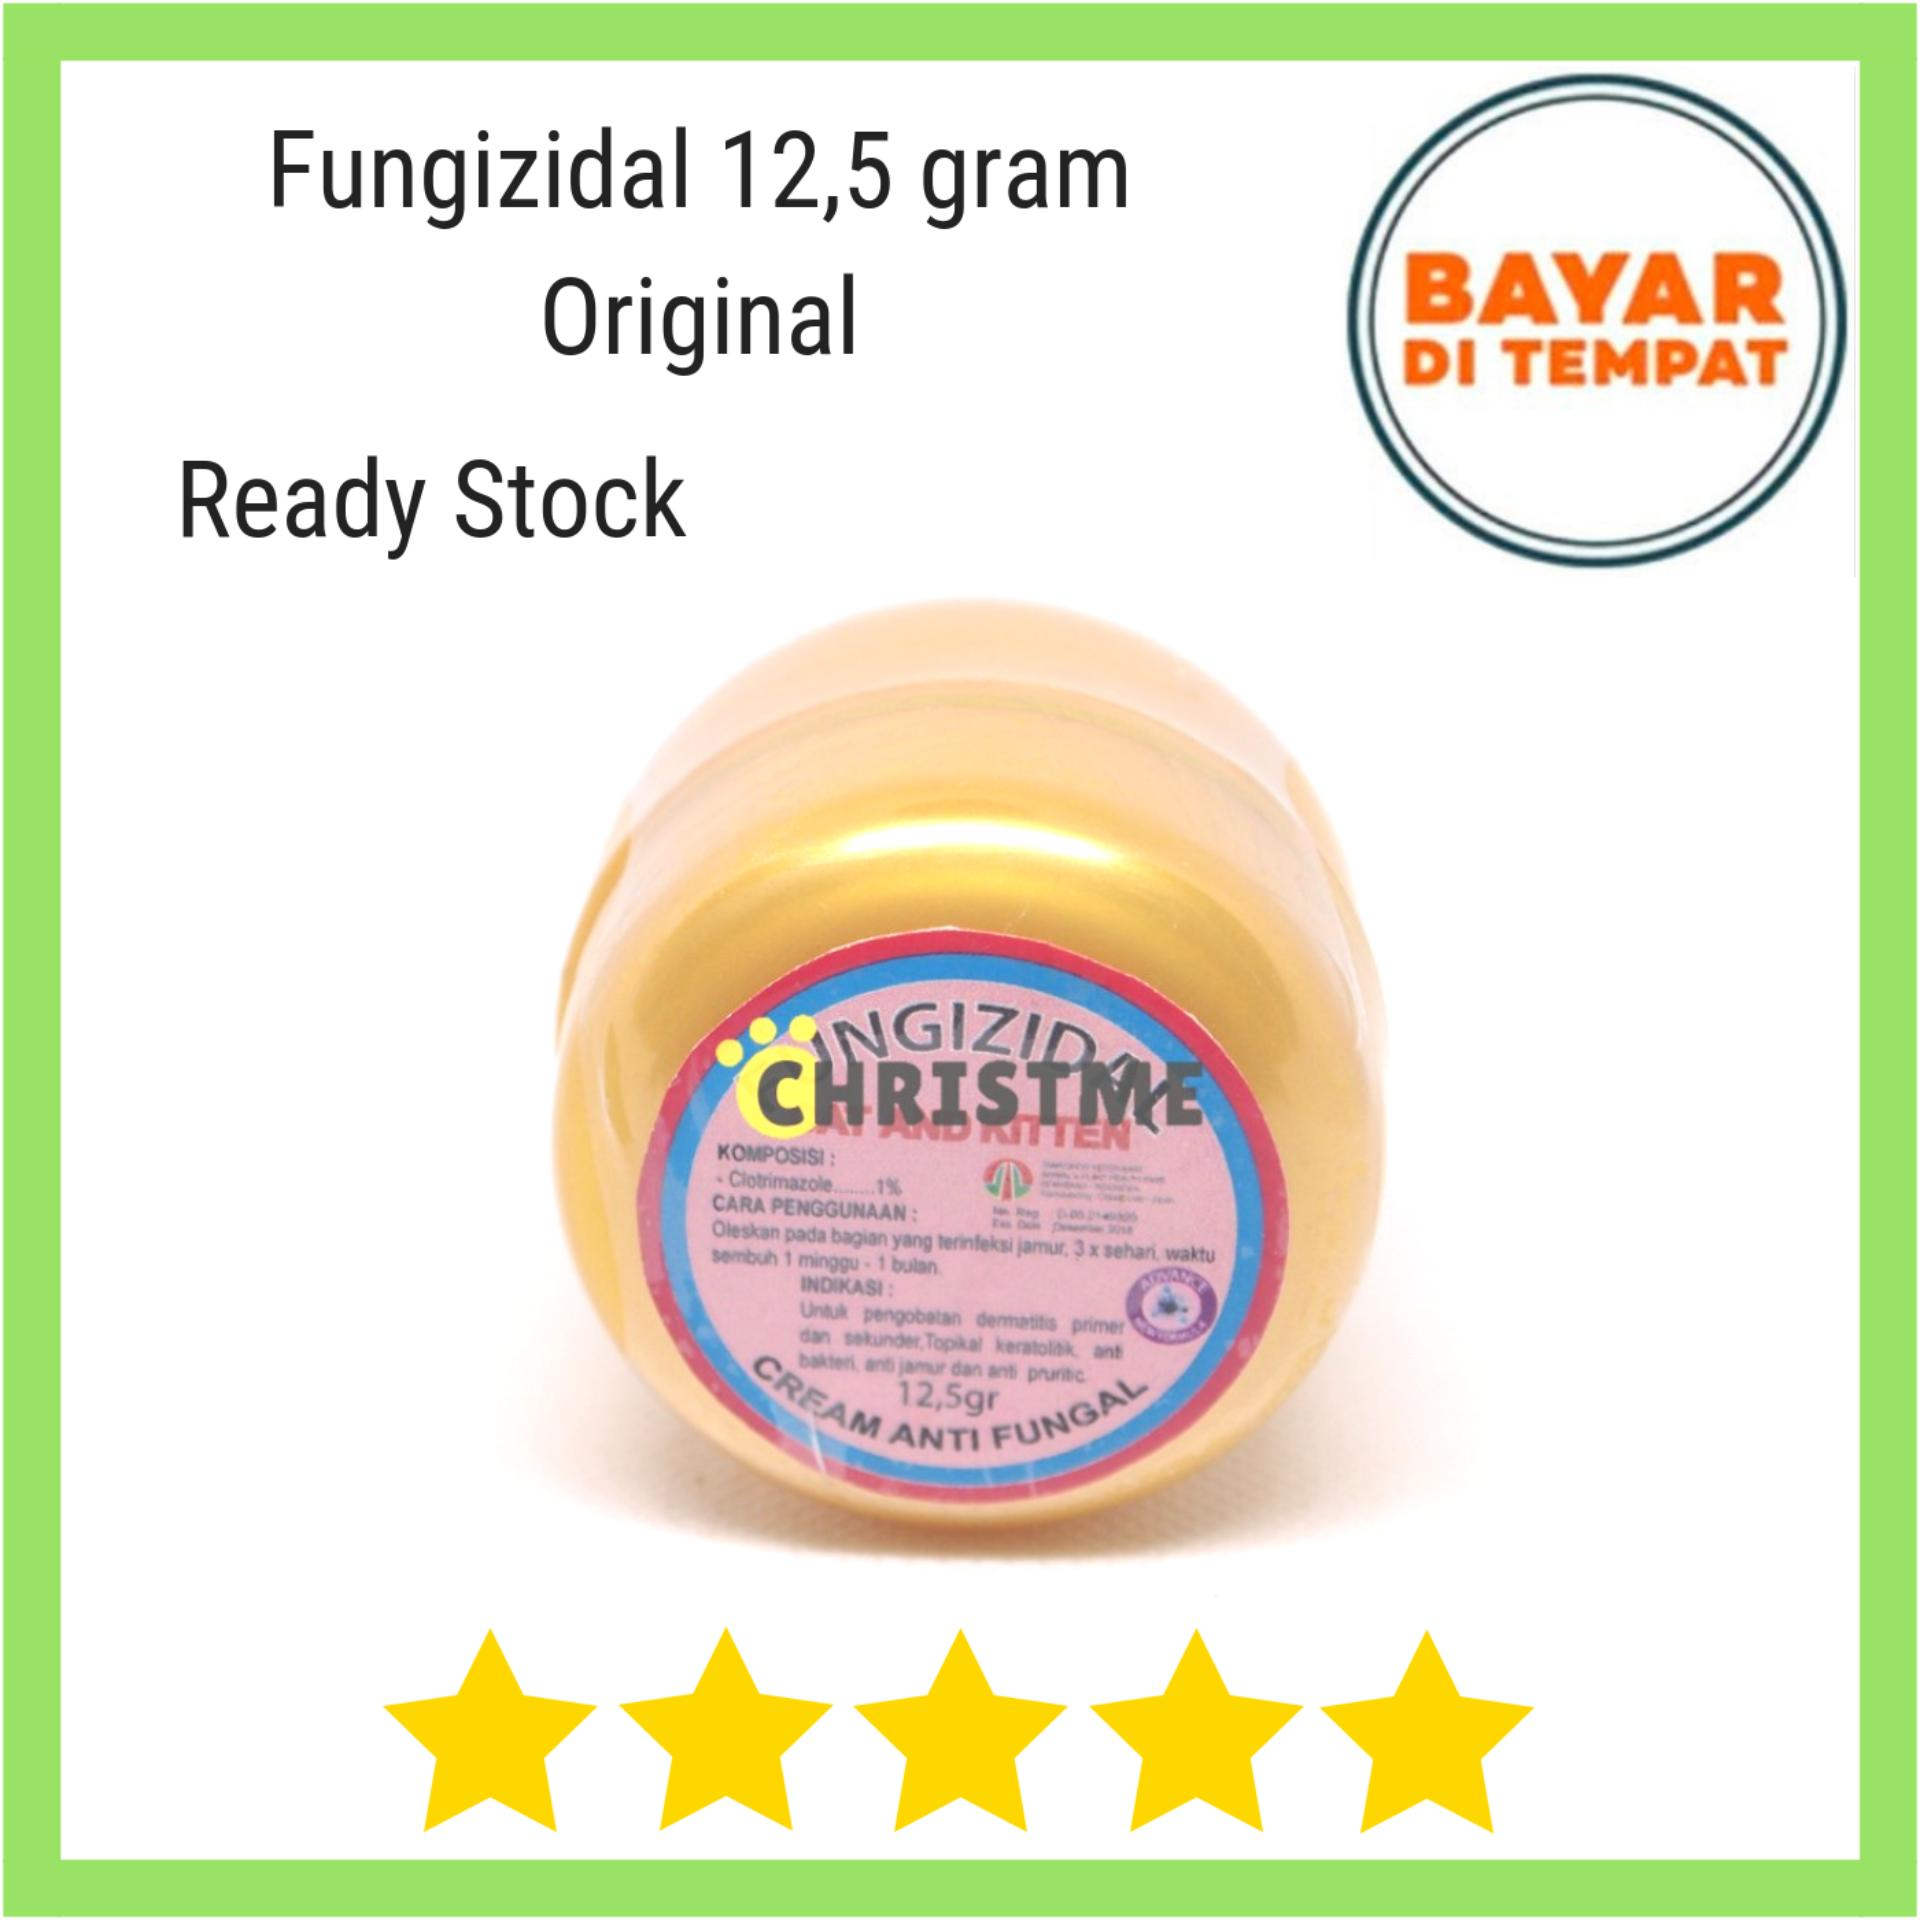 Fungizidal Cat & Kitten 12-5 Gram - Cream Anti Fungal By Christ Me.